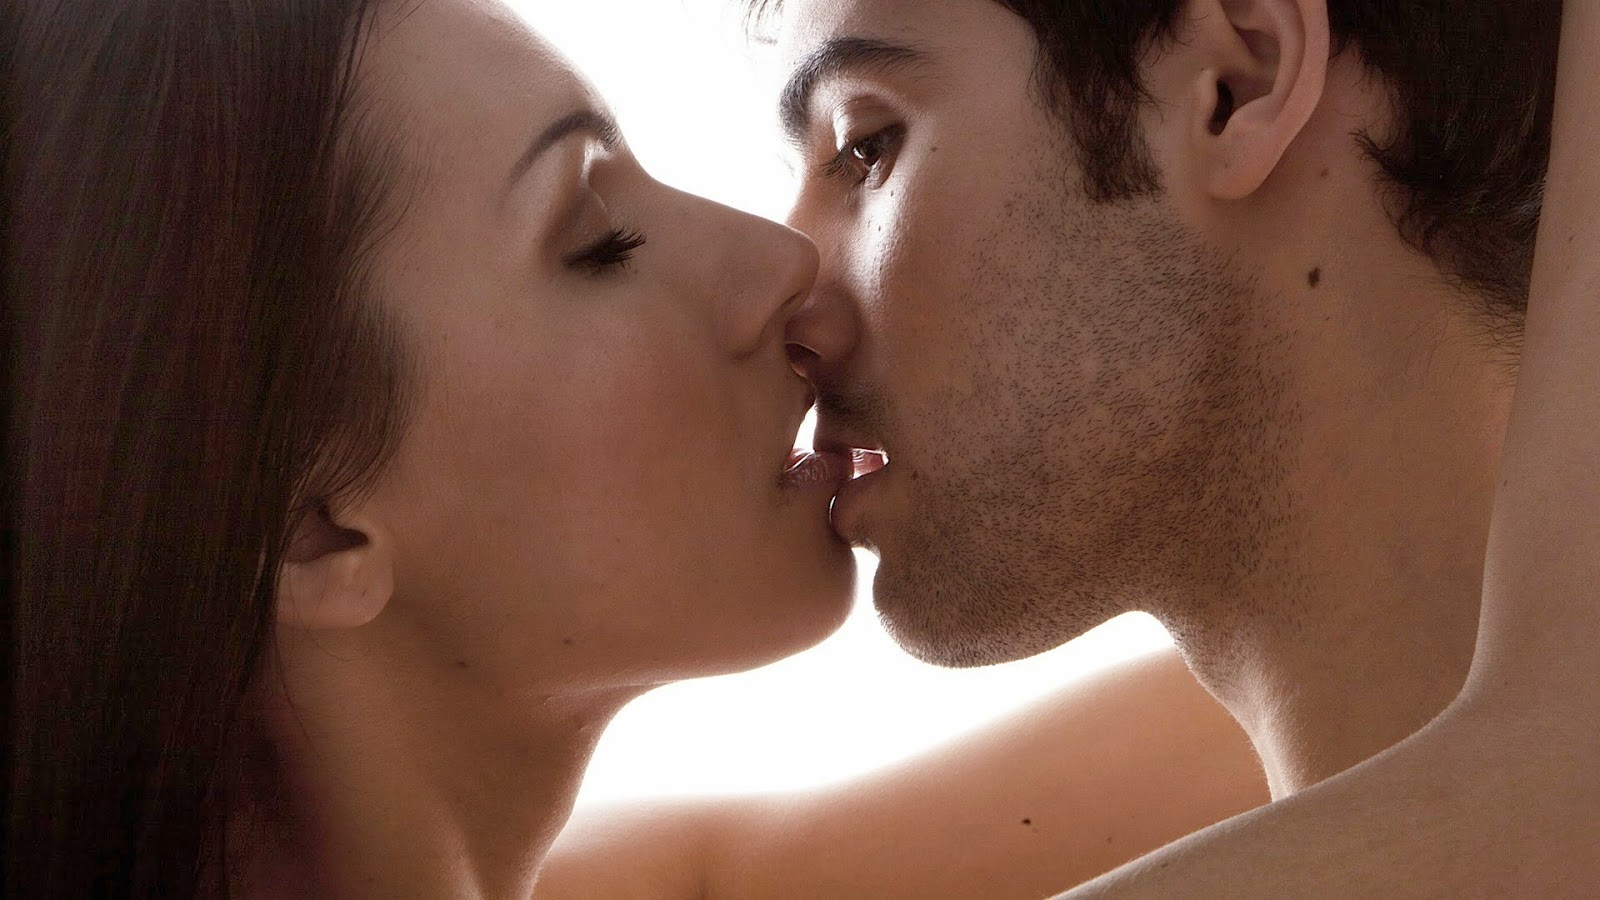 hot sex kiss images free download